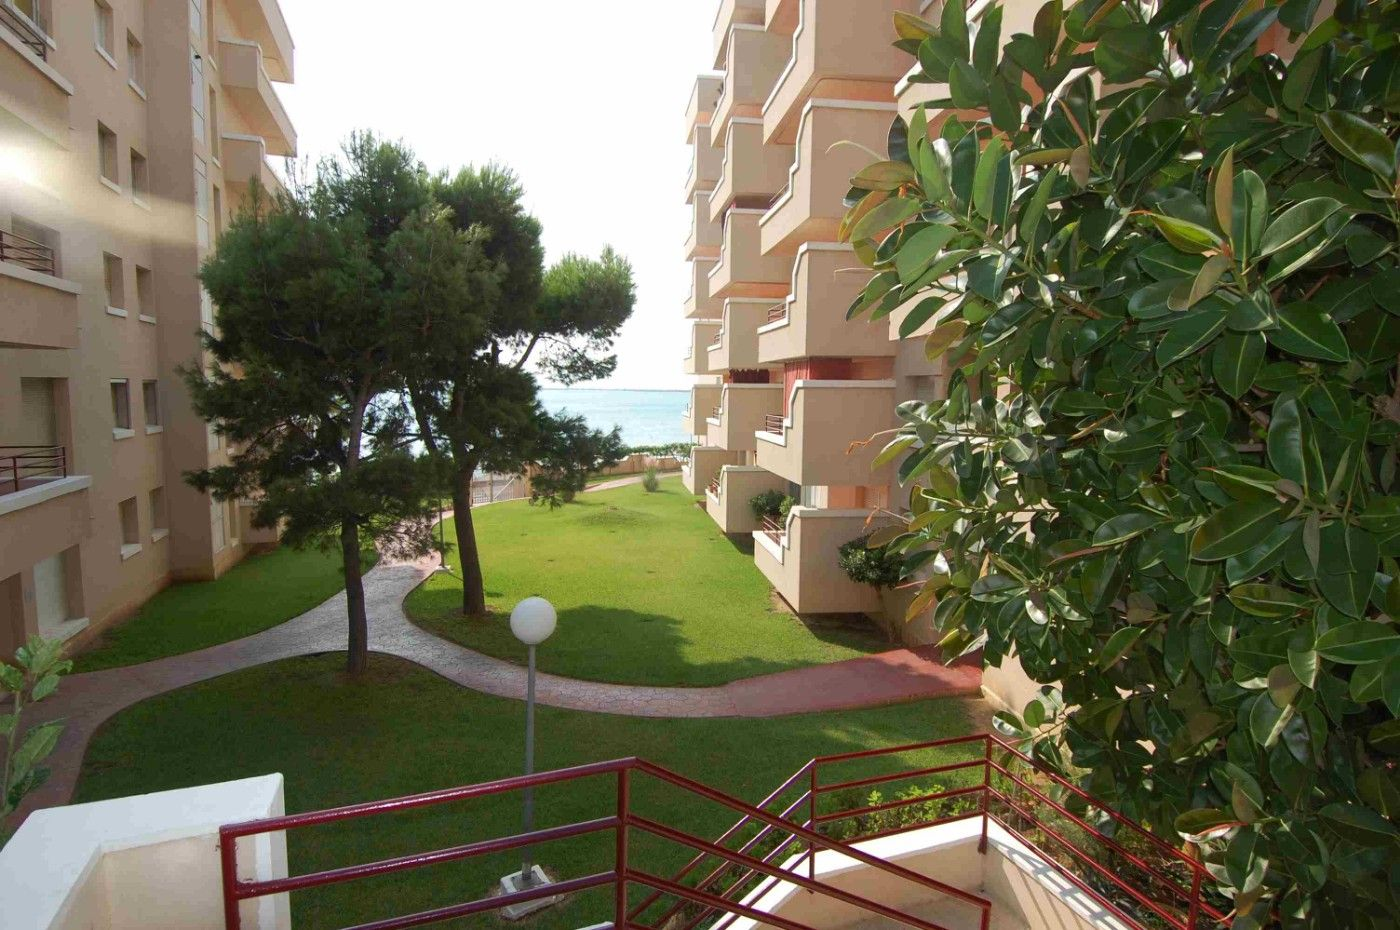 Apartment in Carrer ronda del mar, 54. Piso con vista 30m a la playa